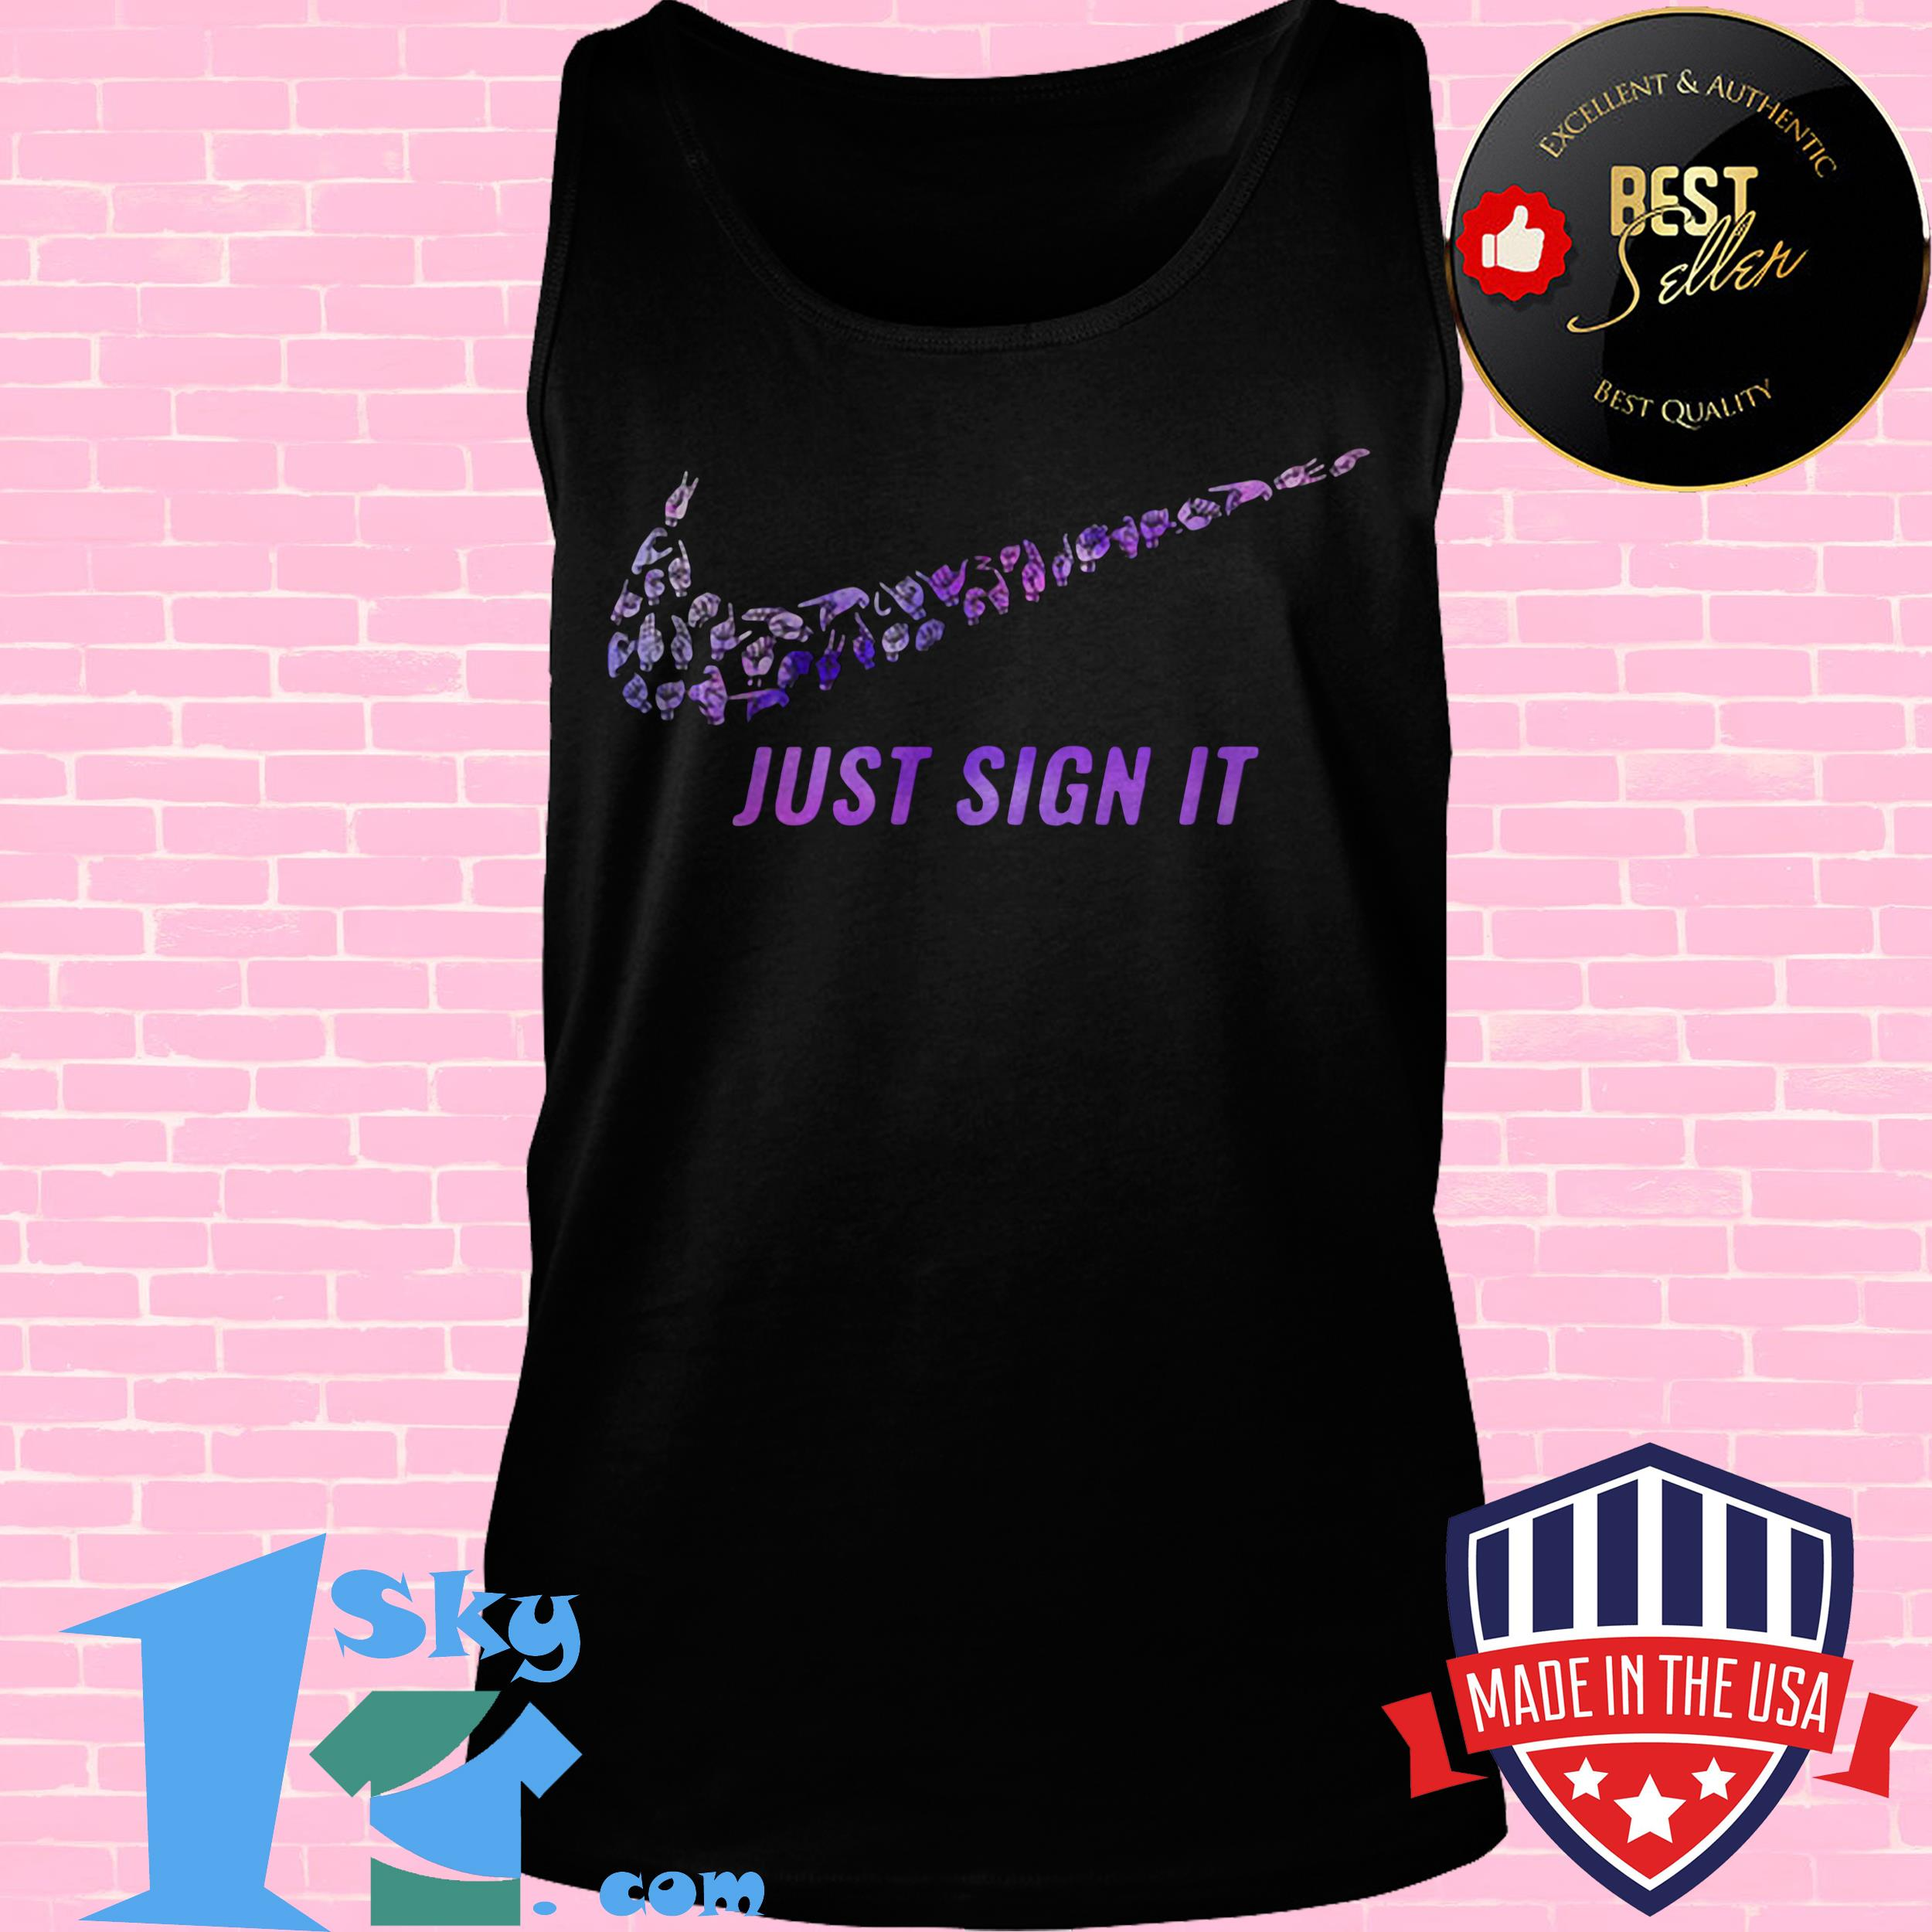 official nike just sign it tank top - Official Nike Just Sign It shirt